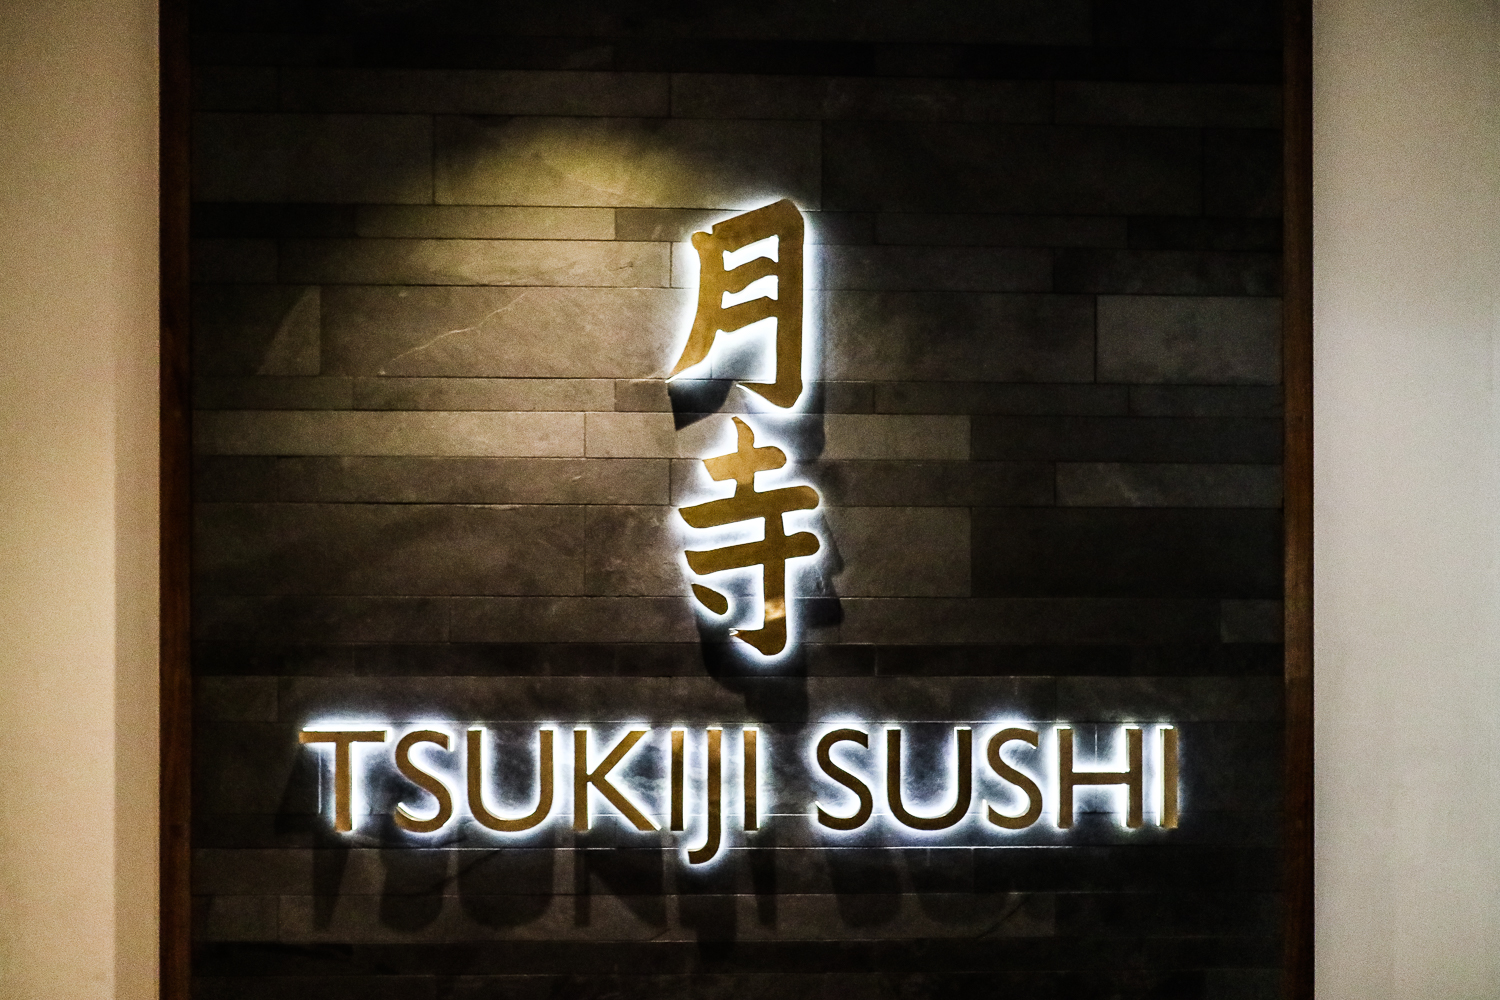 Tsukiji Sushi Mayfair